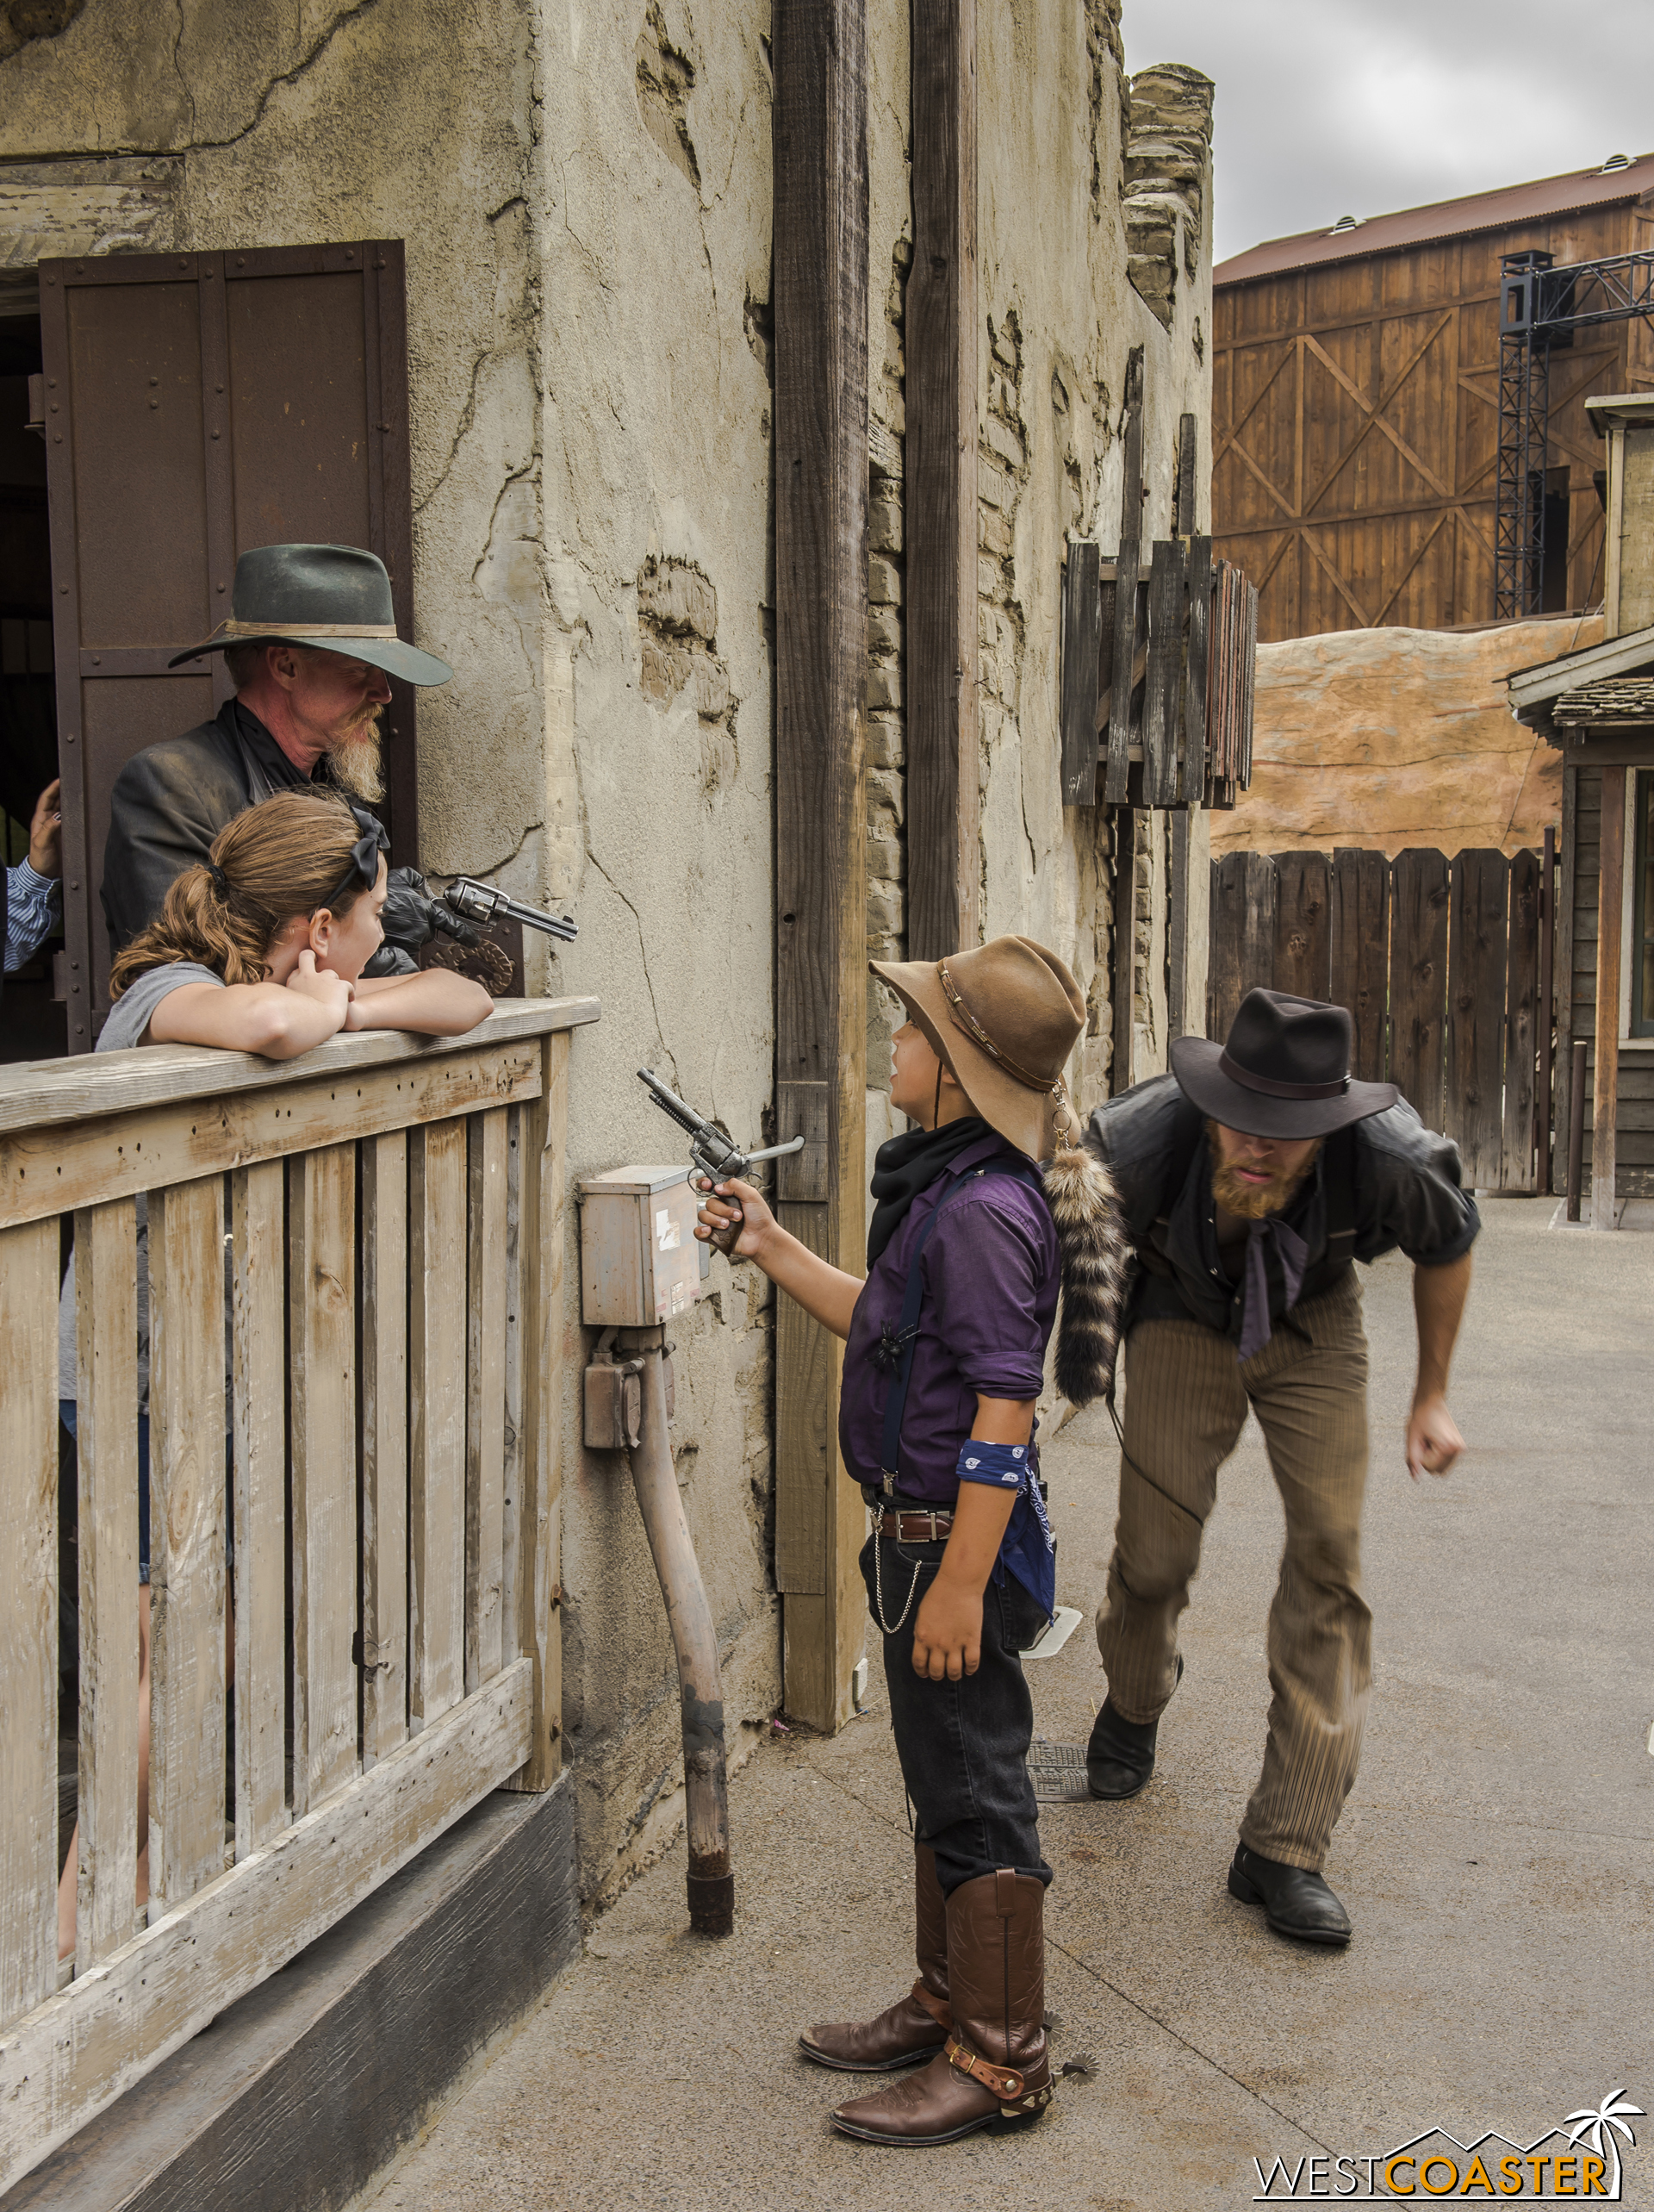 Some guests get VERY involved, such as this case, where a young outlaw holds up Clay Mayfield (who has temporarily aligned himself  with  the law), allowing Fluke Mayfield to slip by.